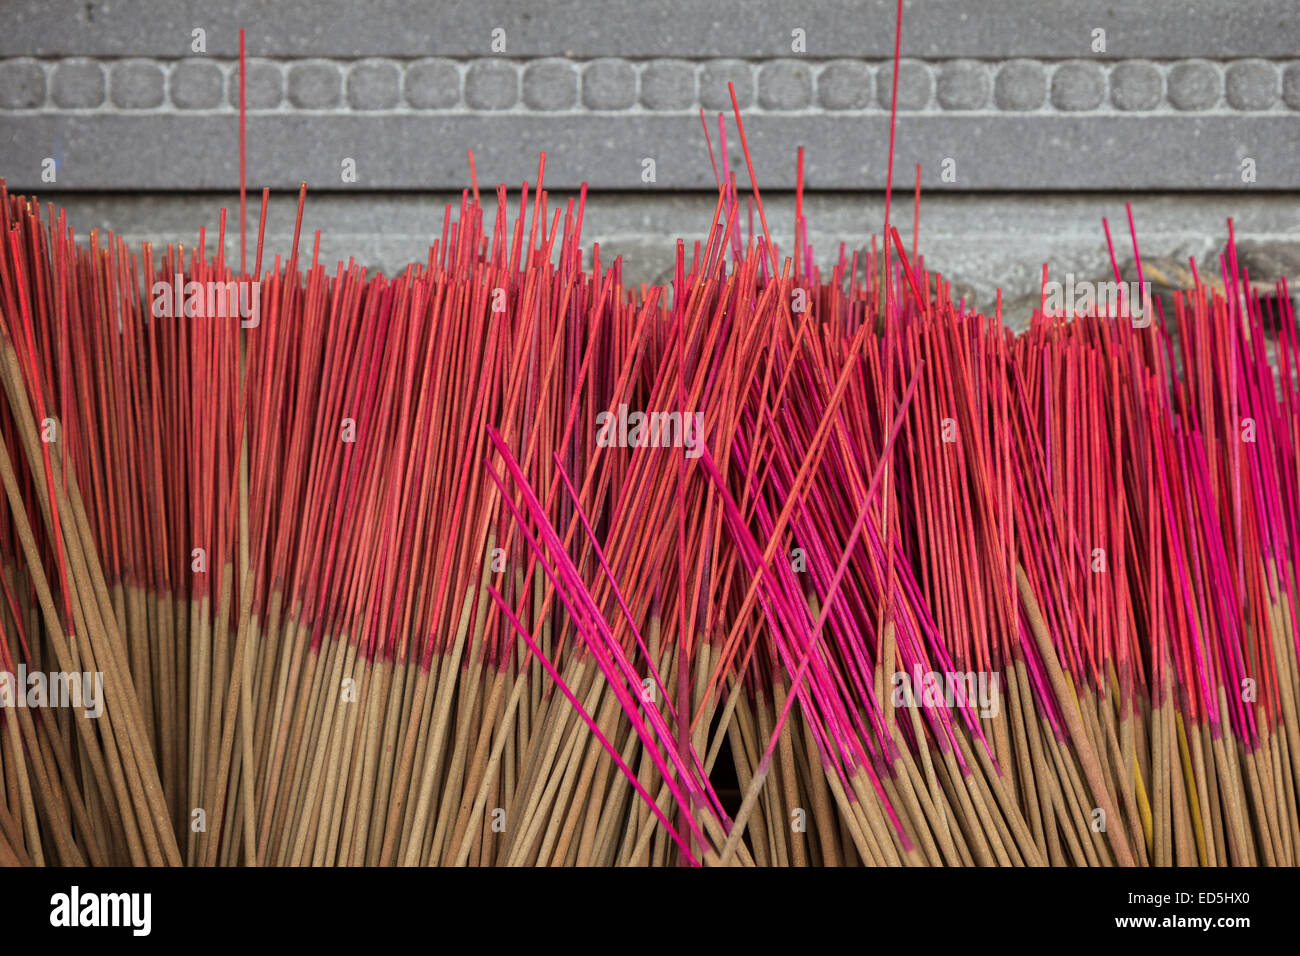 Closeup of group of unused incense sticks at a Buddhist temple in Taiwan - Stock Image